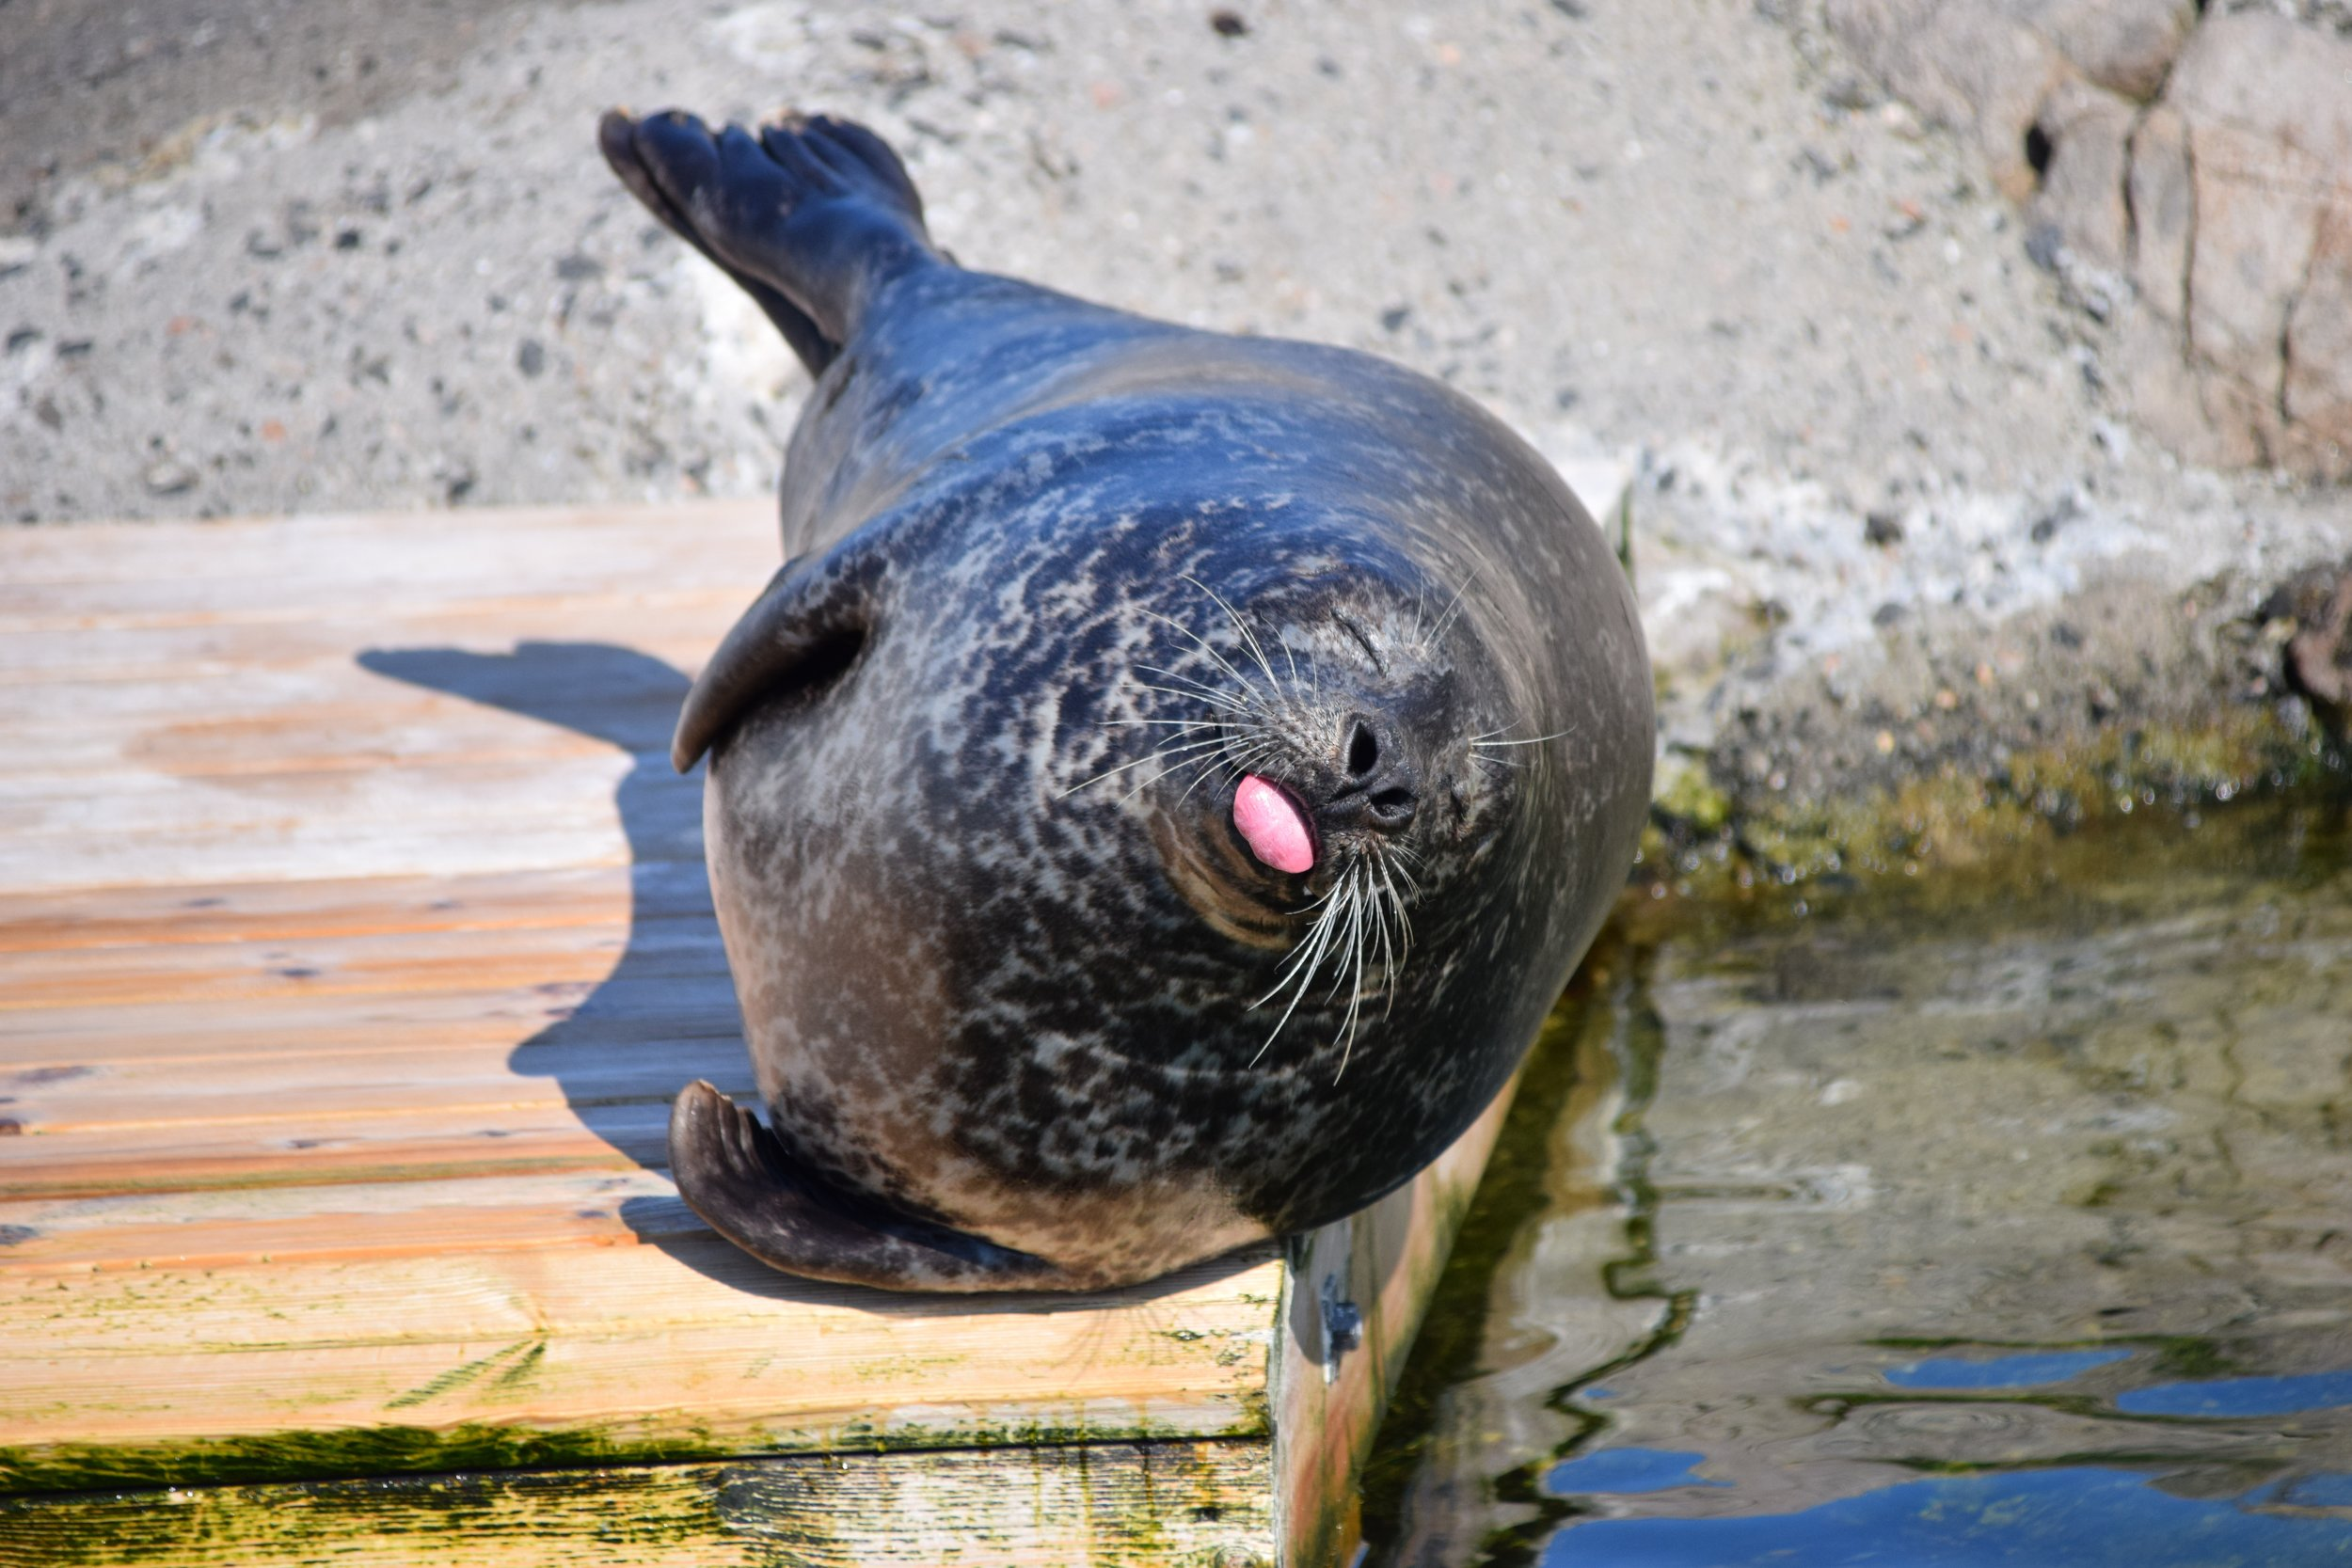 A seal poking its tongue out, about to roll off a jetty